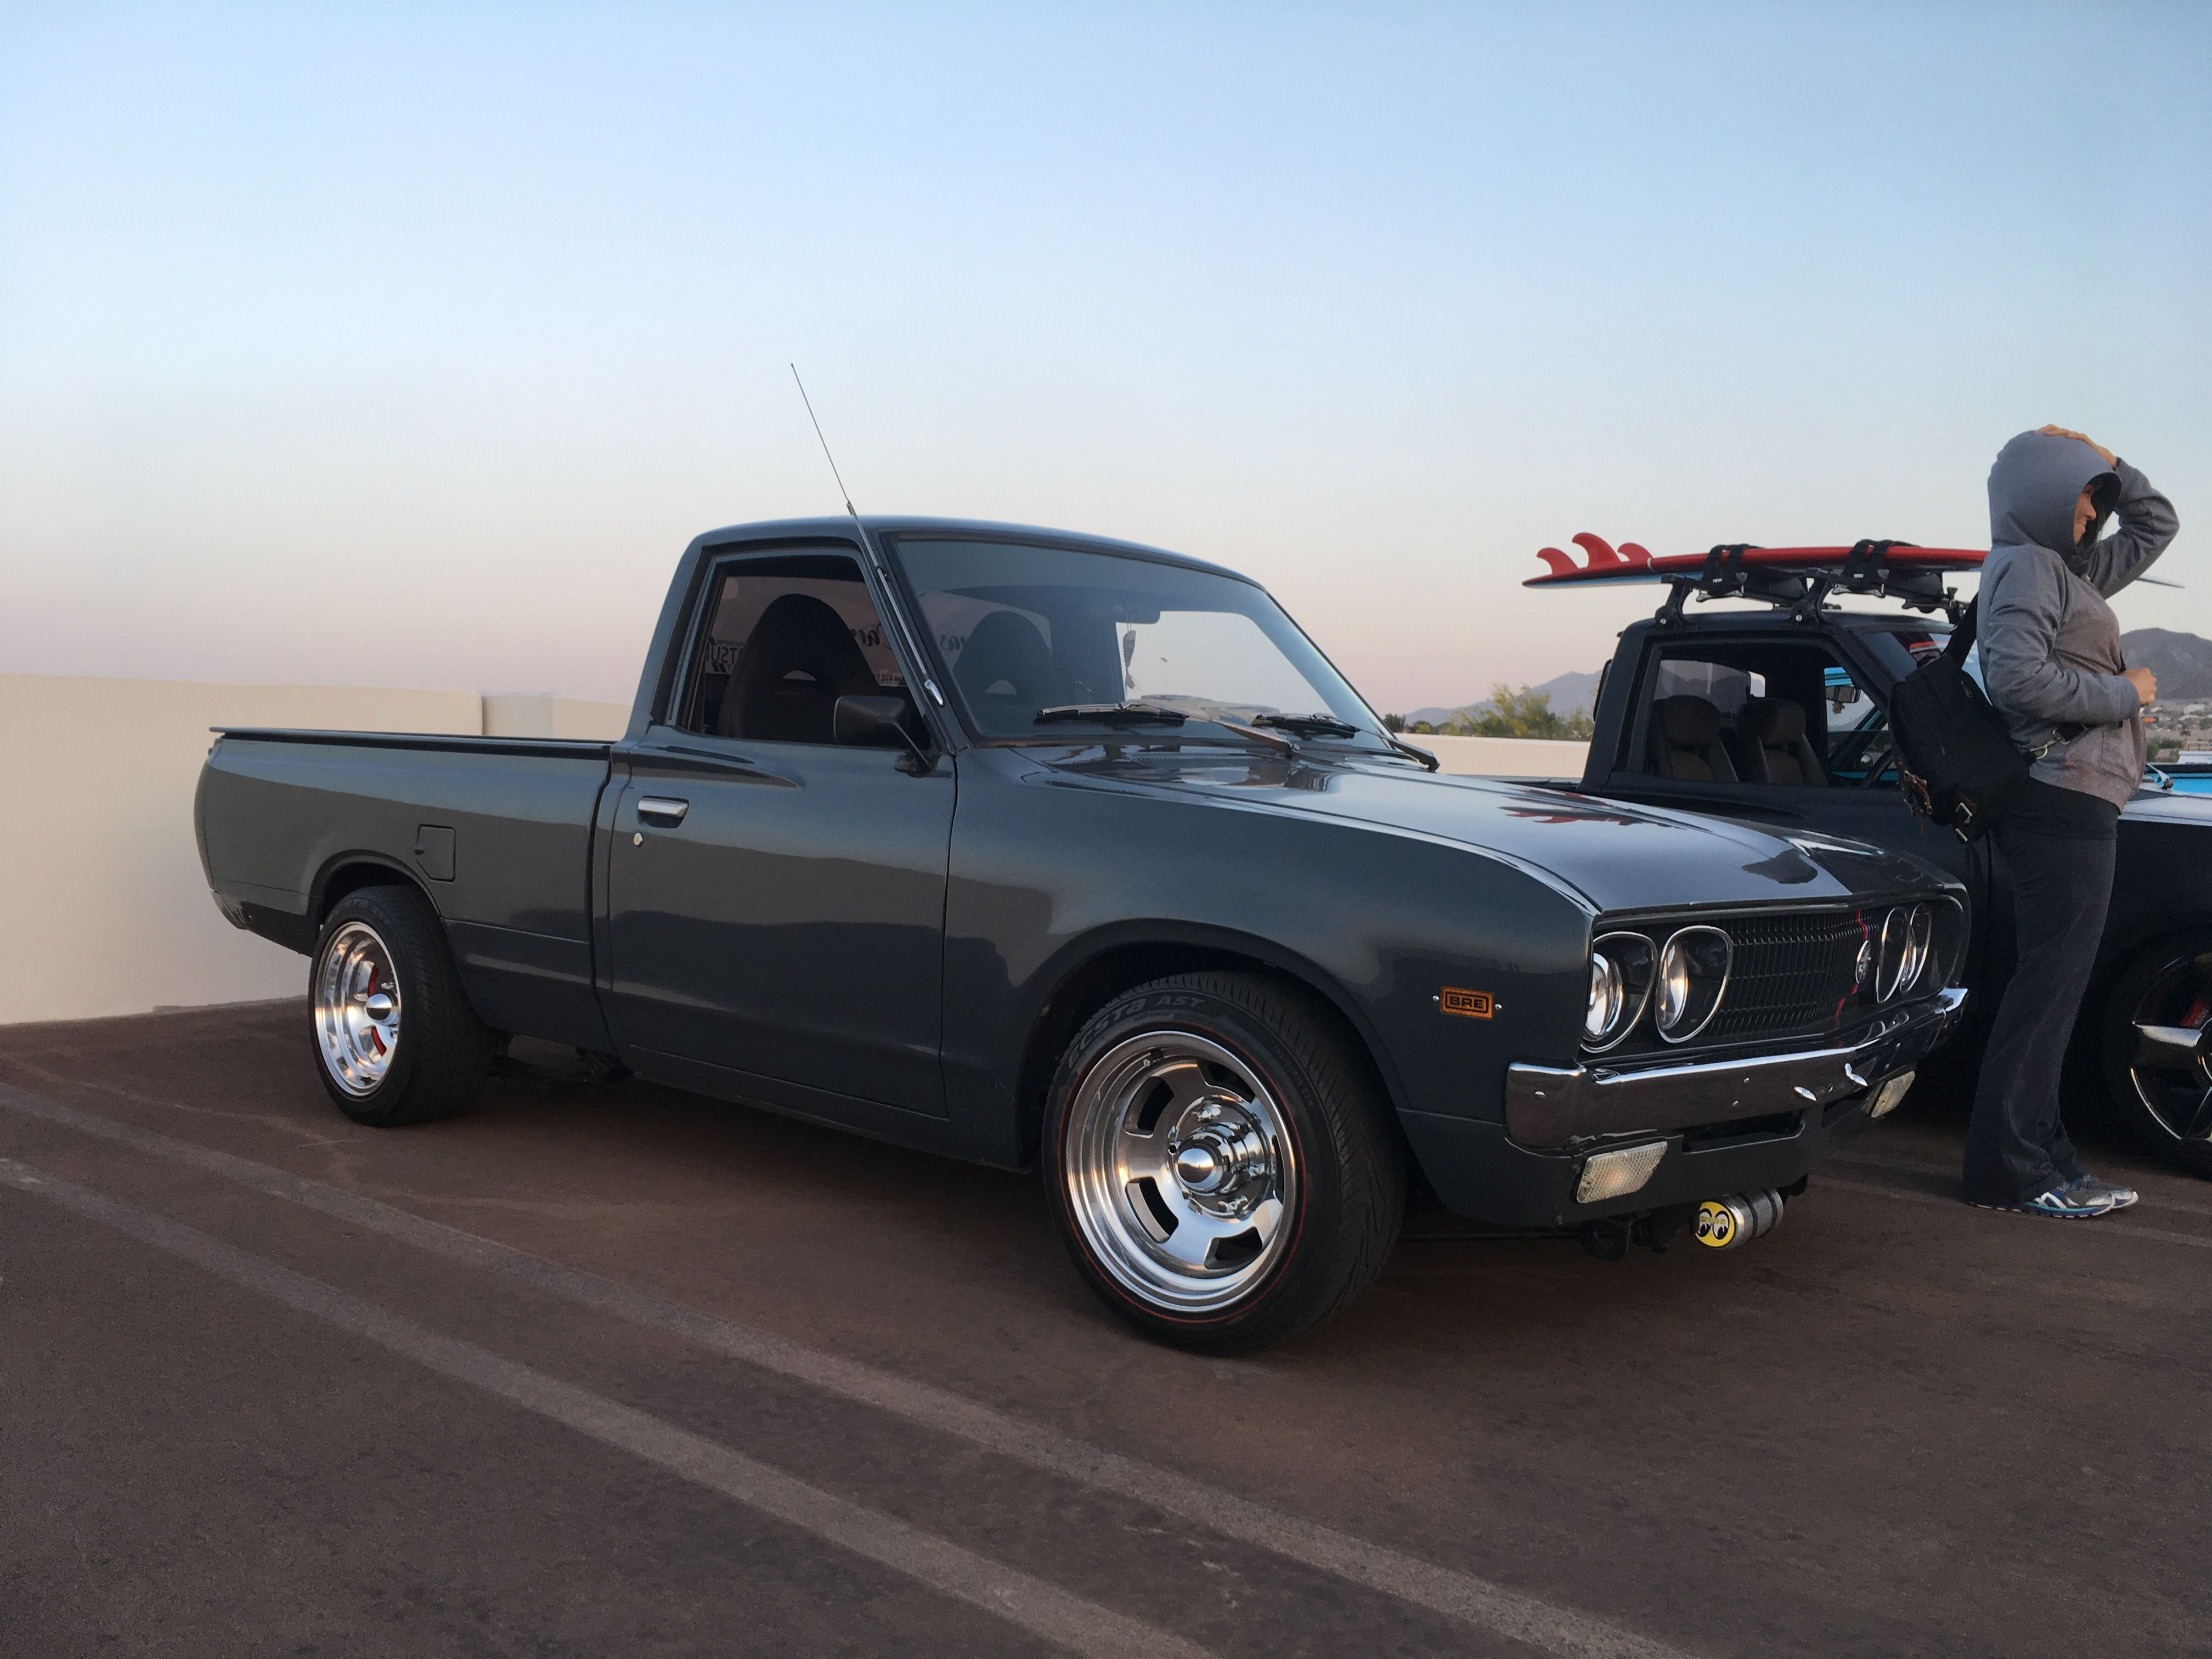 76 datsun pickups for sale the datsun 620 is one of the most beautiful - Mini Trucks Rat Rods Slammed Nissan Automobile Motorcycles Garage Datsun Pickup